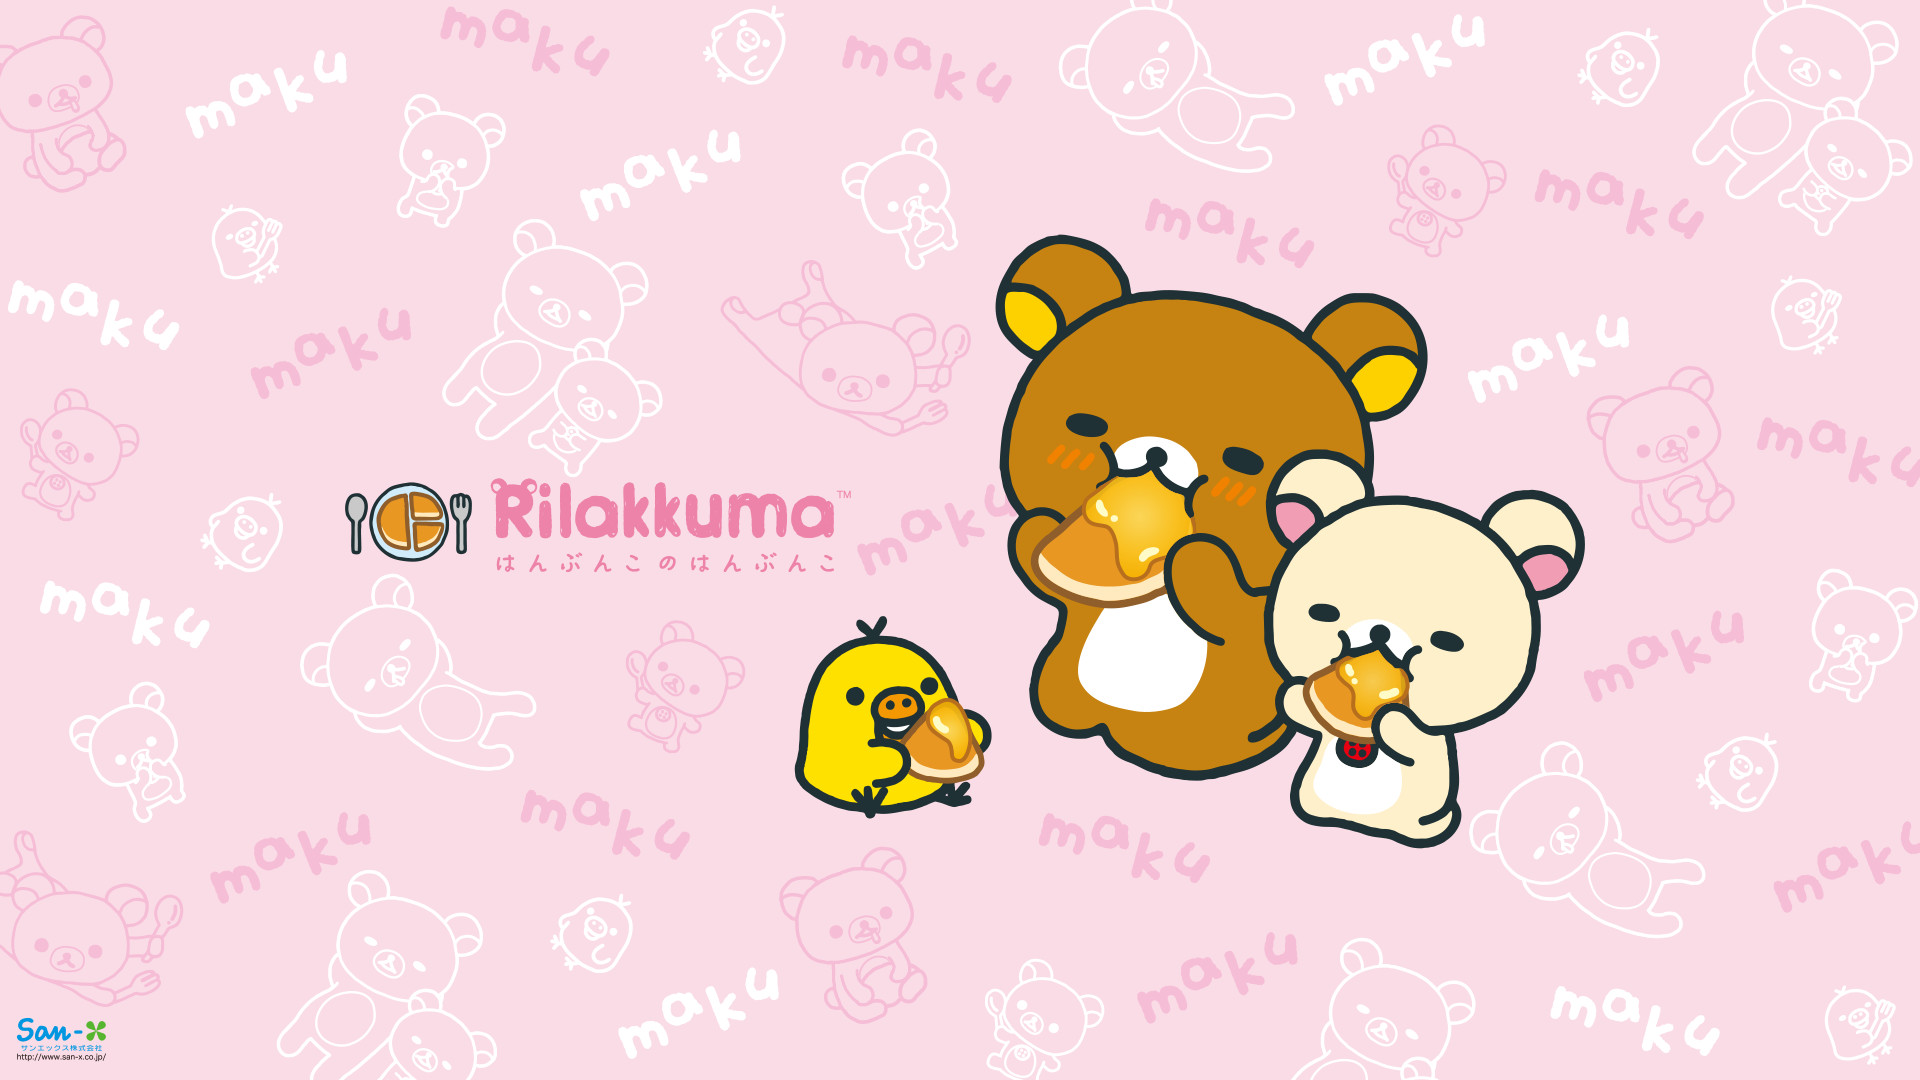 1920x1080 80_1080_1920.png 1,920×1,080 pixels | BG/Wallpaper/Pattern | Pinterest |  Rilakkuma, Rilakkuma wallpaper and Sanrio